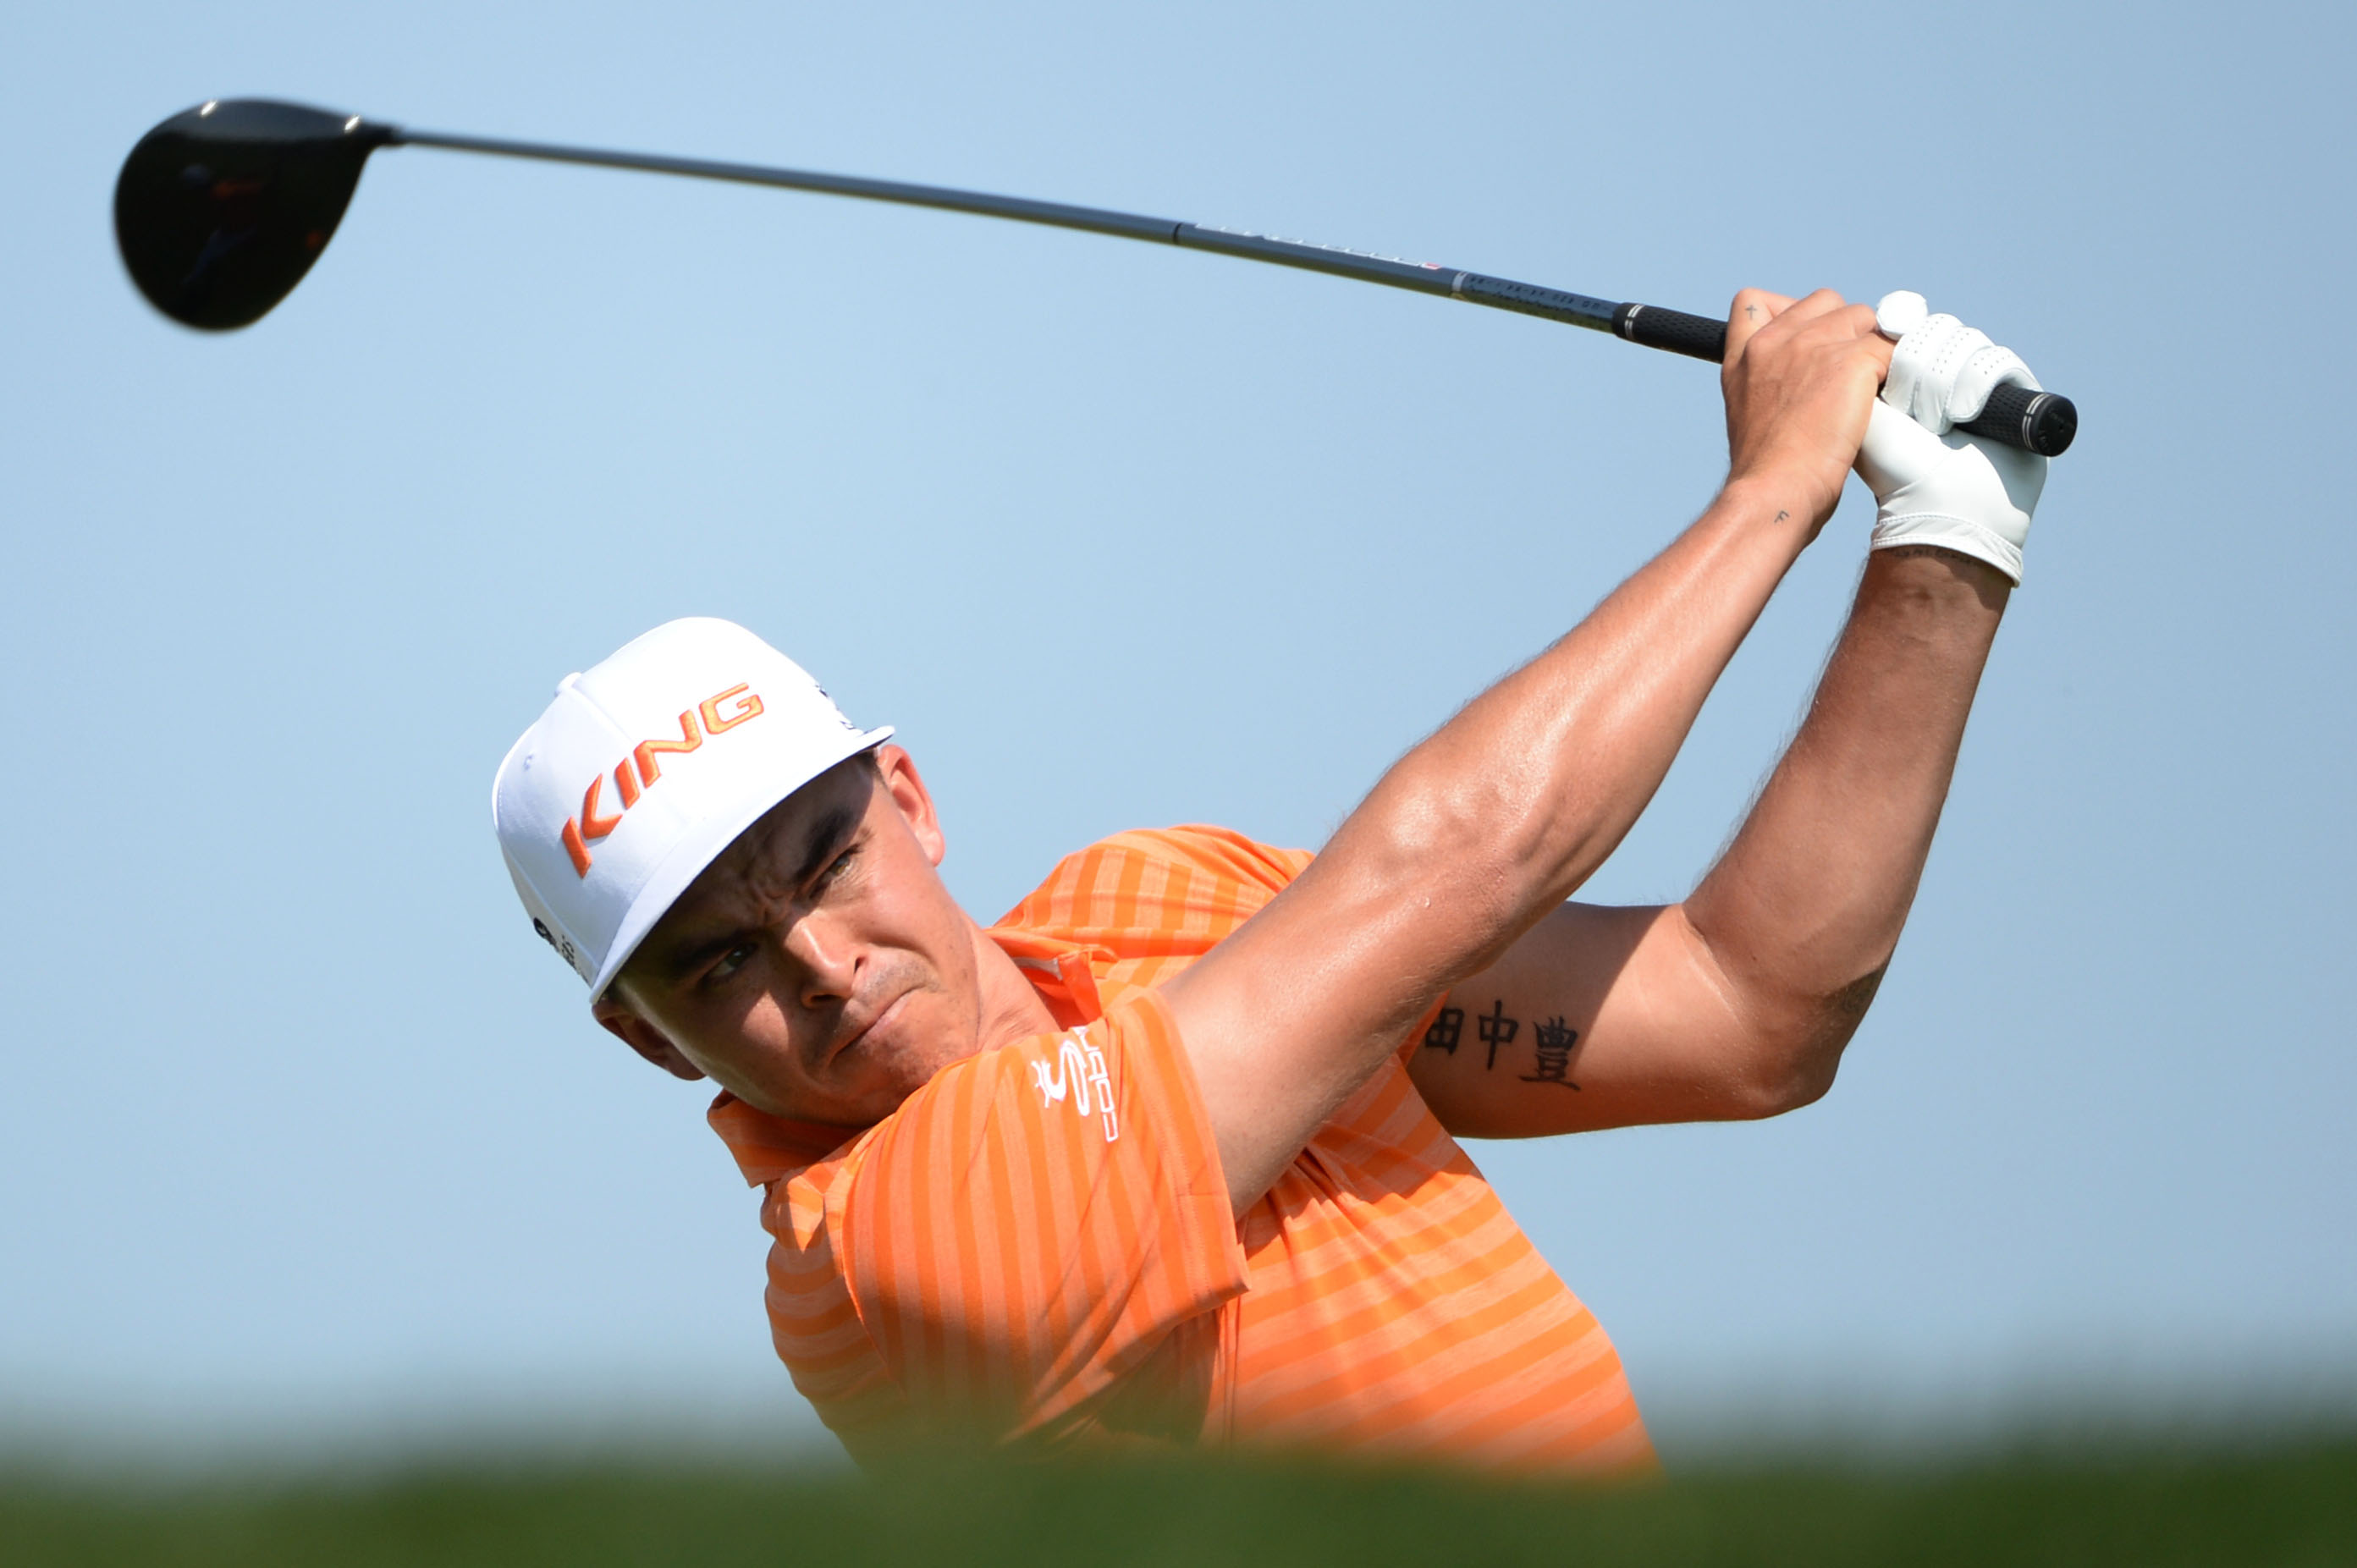 Rickie Fowler of the Unites States tees off at the third hole during the final round of the Abu Dhabi Golf Championship in Abu Dhabi, United Arab Emirates, Sunday, Jan. 24, 2016. (AP Photo/Martin Dokoupil)